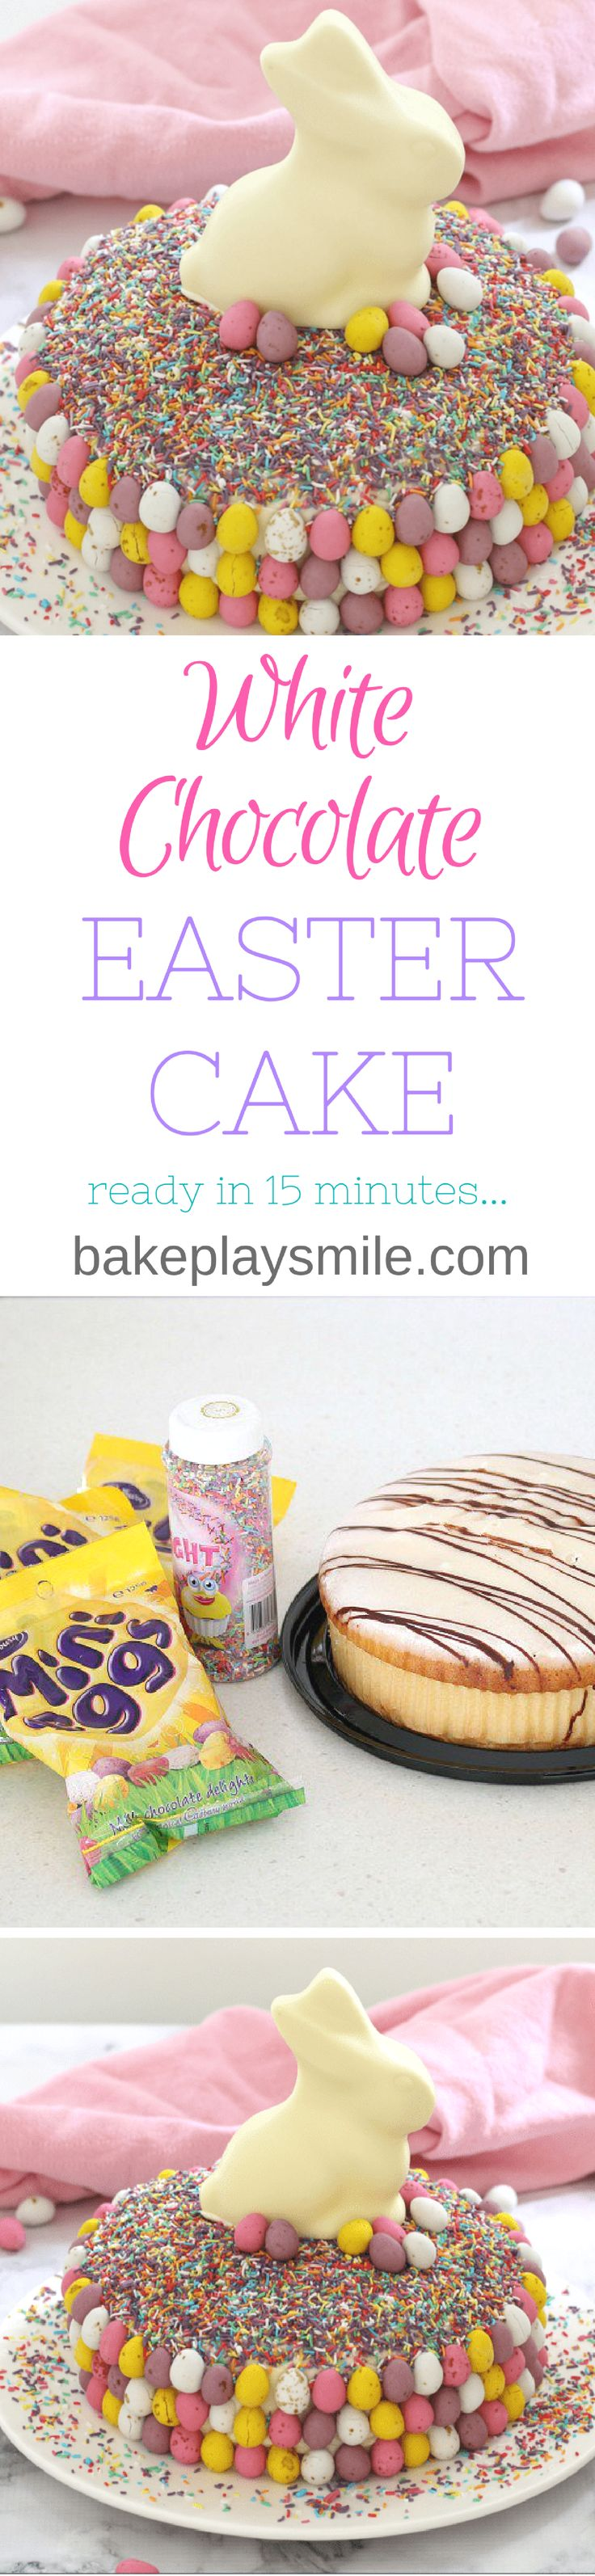 15 minutes is all it takes to whip up this show stopping Easy White Chocolate Easter Cake. It looks AMAZING but is the simplest recipe ever!!! A store-bought white chocolate mud cake covered in white chocolate frosting, heaped with pretty sprinkles and decorated with pastel chocolate Easter eggs and a white chocolate bunny... this really is the ultimate Easter cake!  #easter #cake #15minutes #video #recipe #easy #white #chocolate #bunny #best